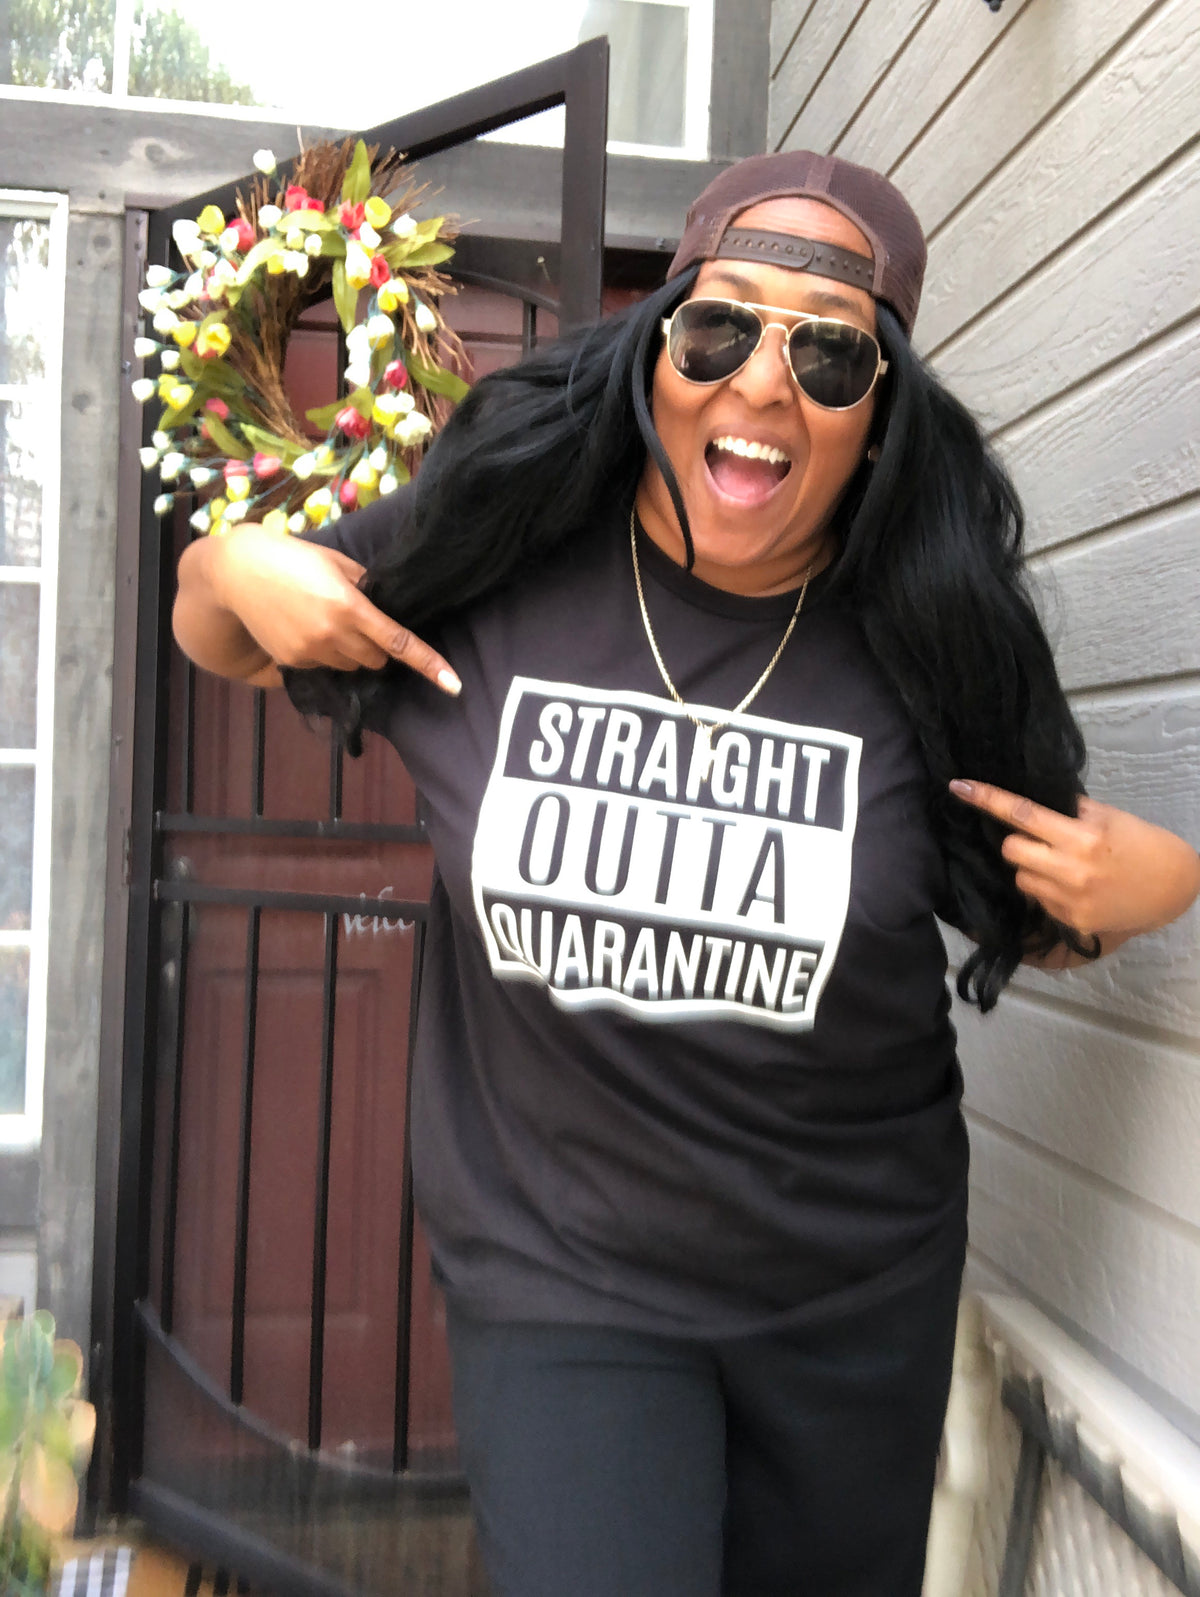 Straight Outta Quarantine Graphic Tee